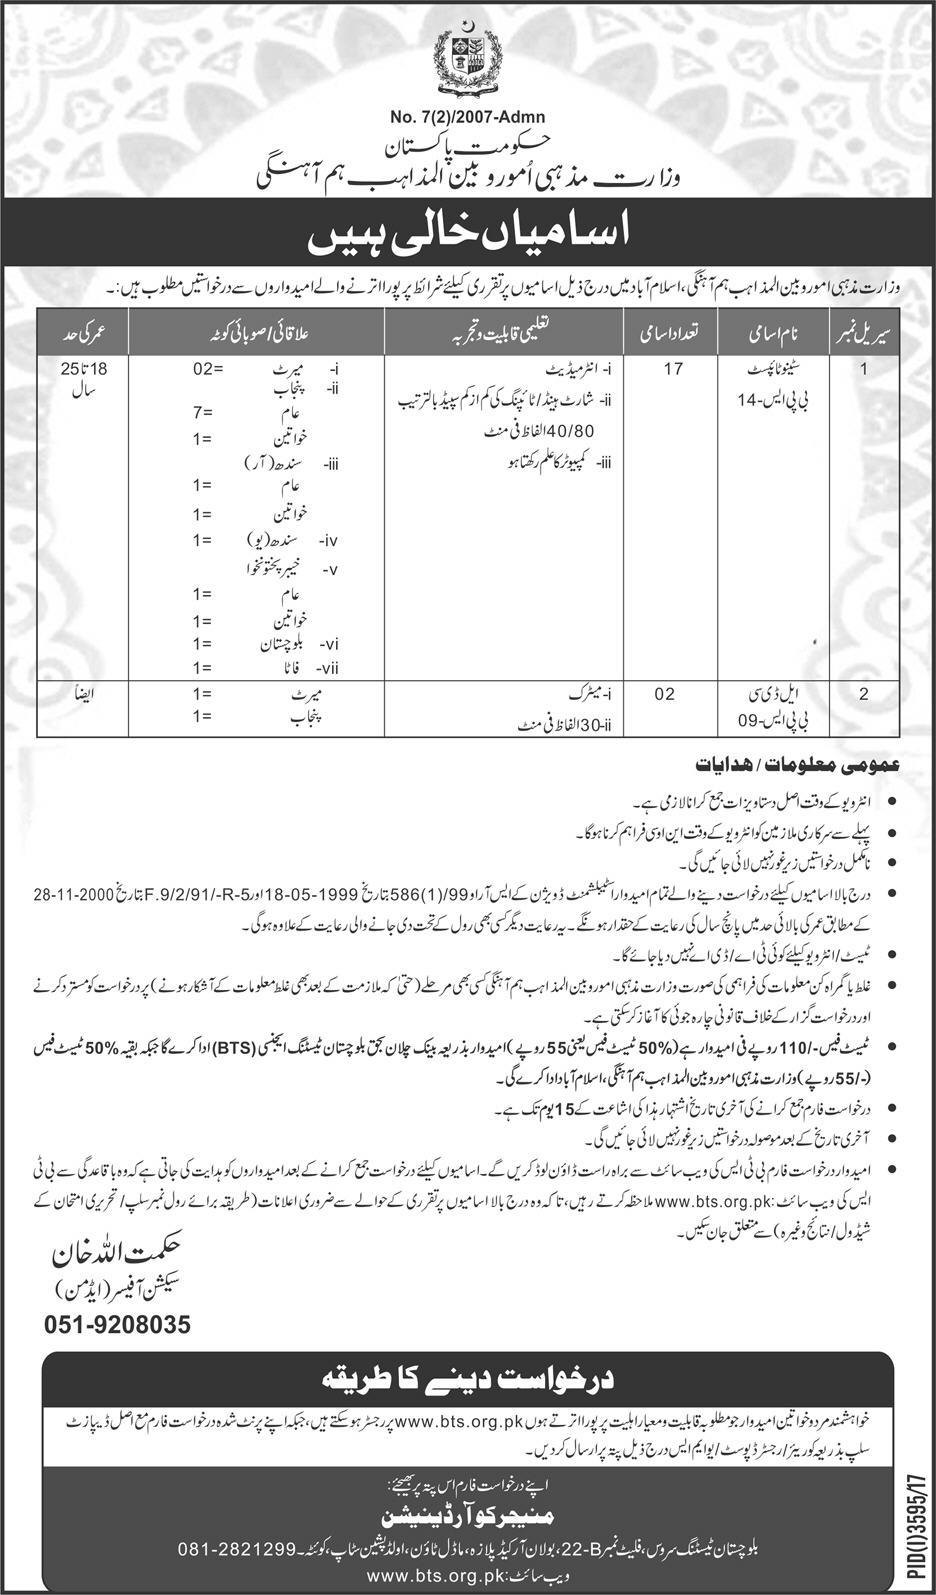 Islamabad Ministry of Religious Affairs and interfaith Harmony 19 Jobs, 07 January 2018 Daily Express Newspaper